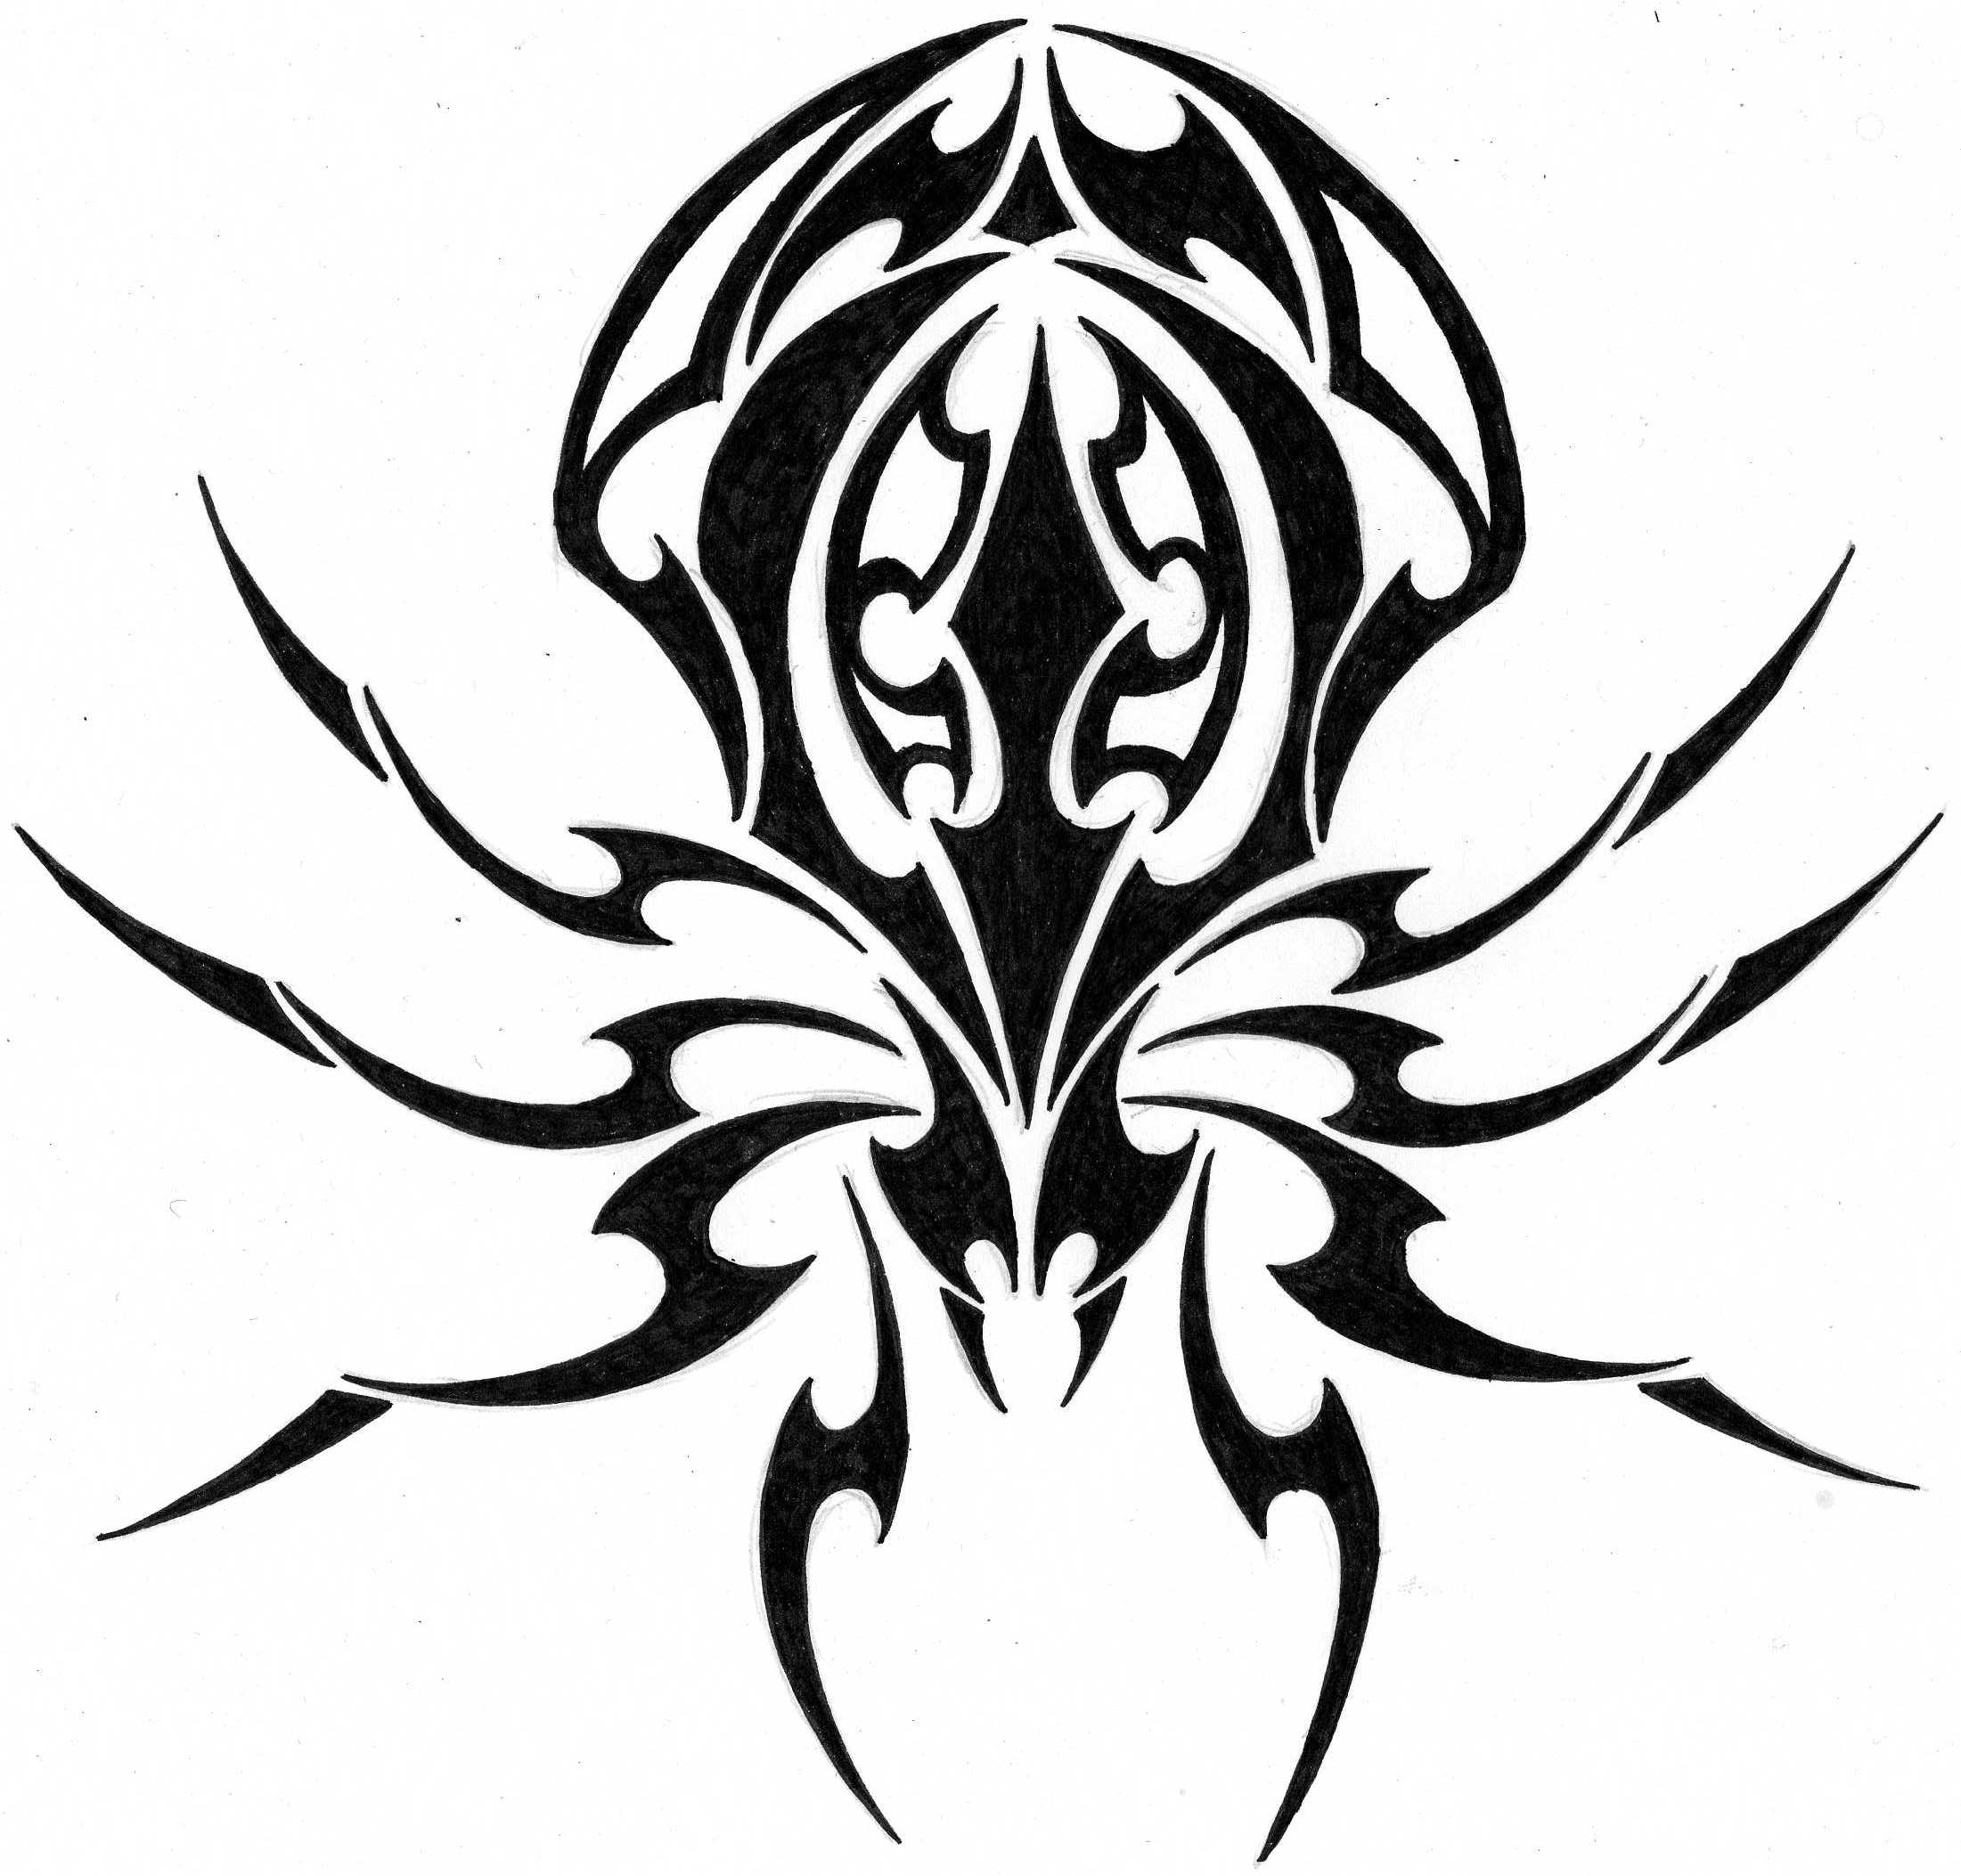 Drawn spider web tribal Meaning Designs Tattoos For Ideas